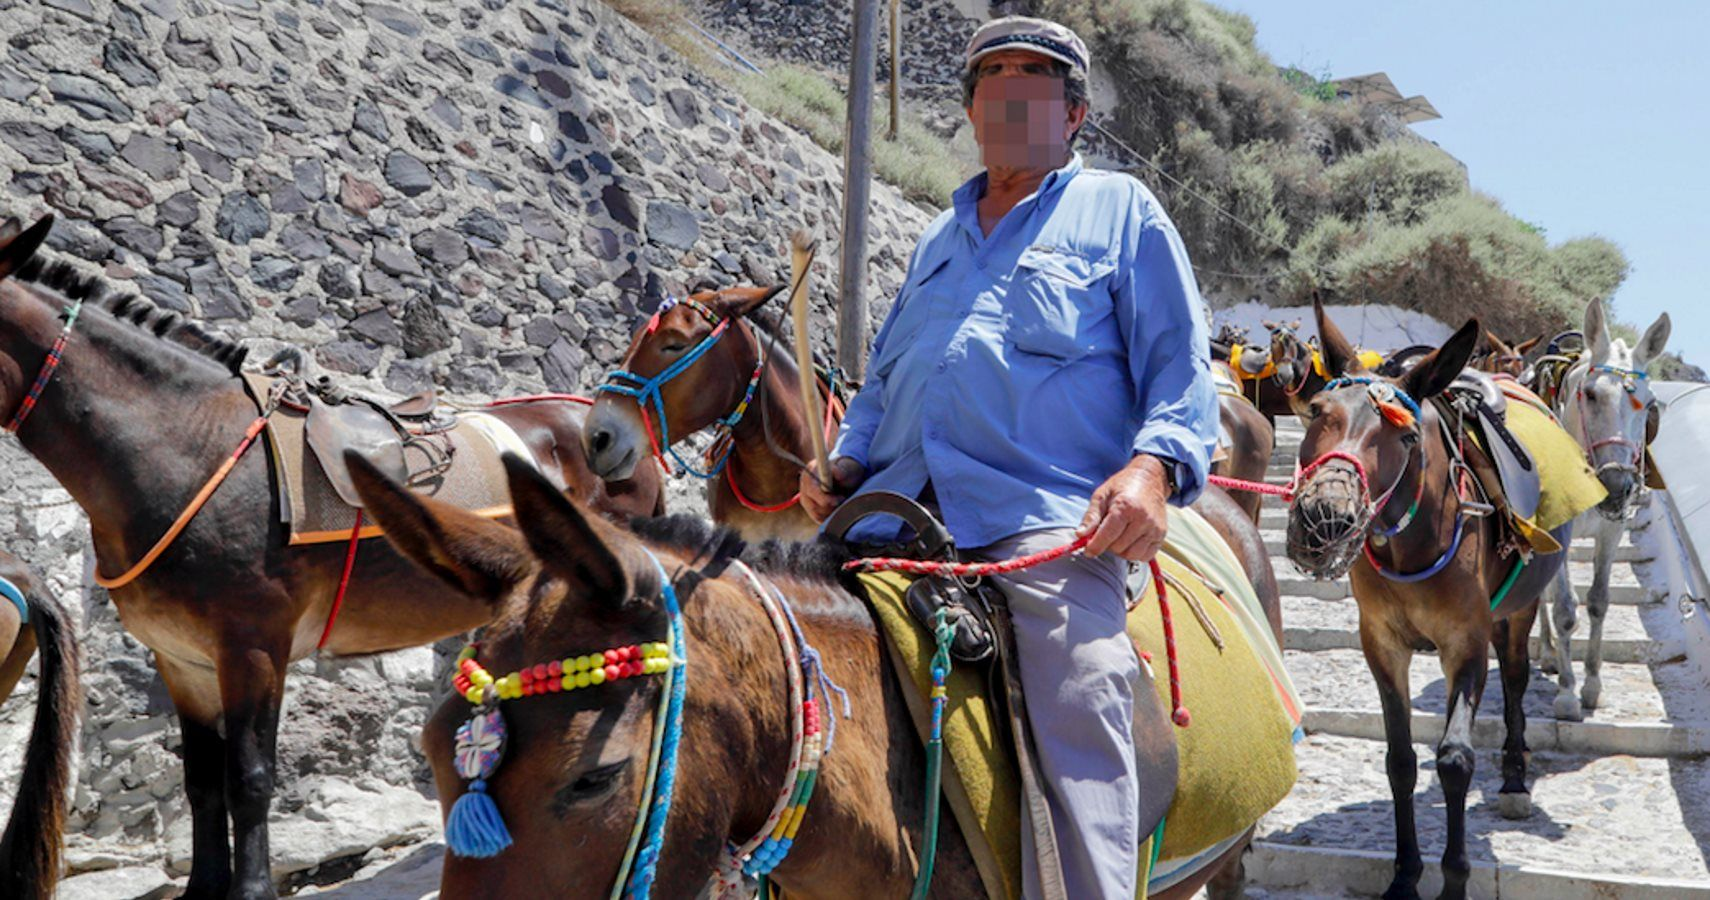 In Greece, banned fat tourists ride a donkey 87